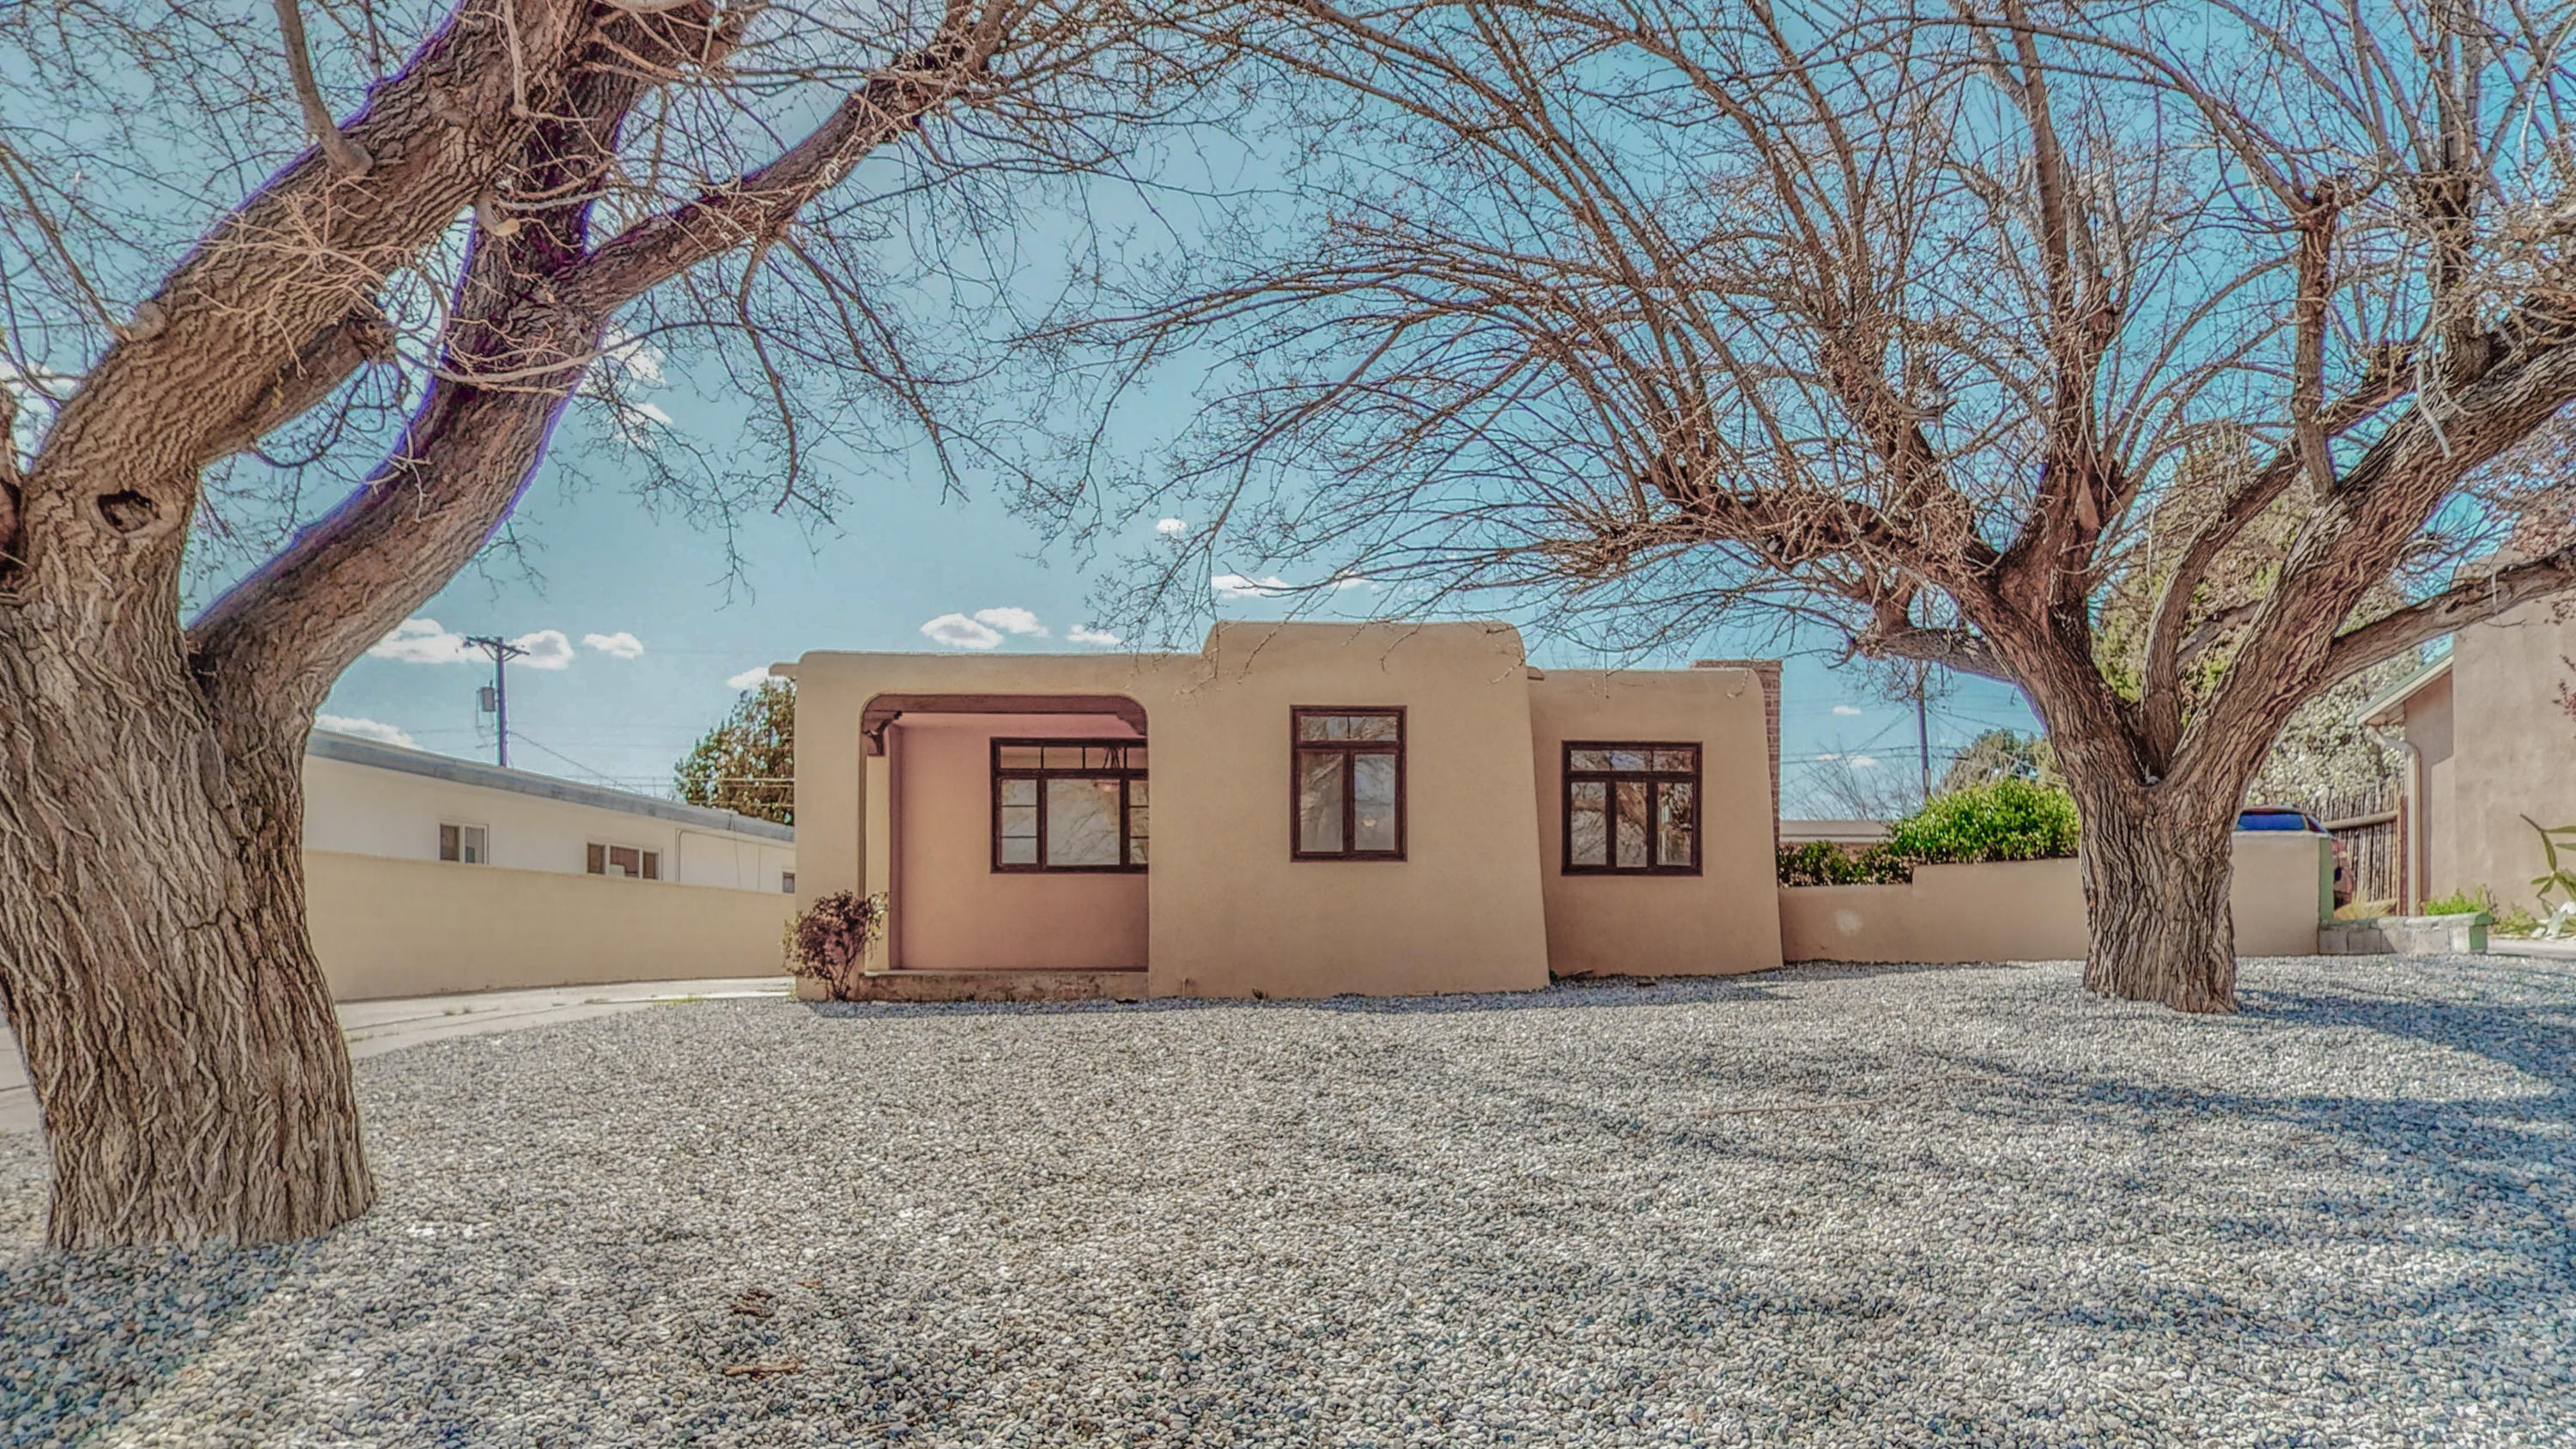 Charming 1950's pueblo, with so much original charm and light, plus fresh updates.  The original hardwood floors are in beautiful condition, and the bathrooms and kitchen have been nicely updated. Newly installed oven and dishwasher! Close to many convenient areas of town and amenities.